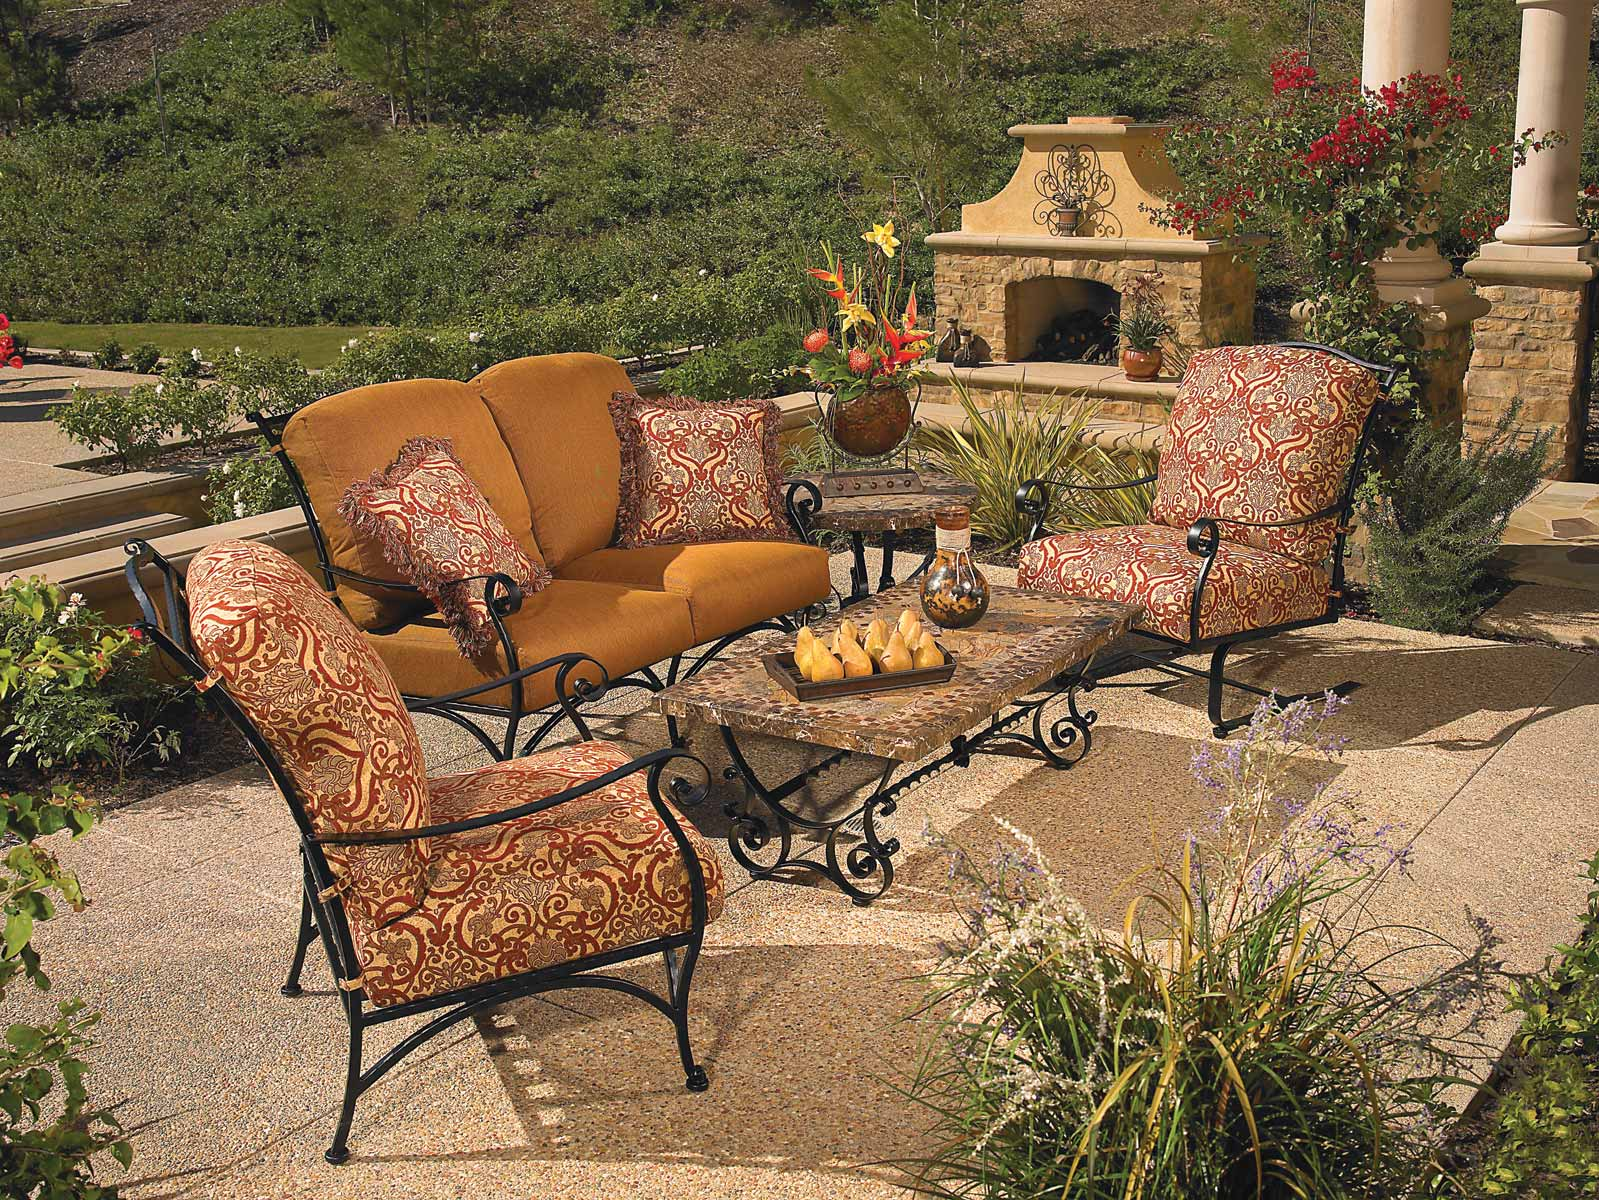 Luxury Outdoor Furniture Set Fireplace